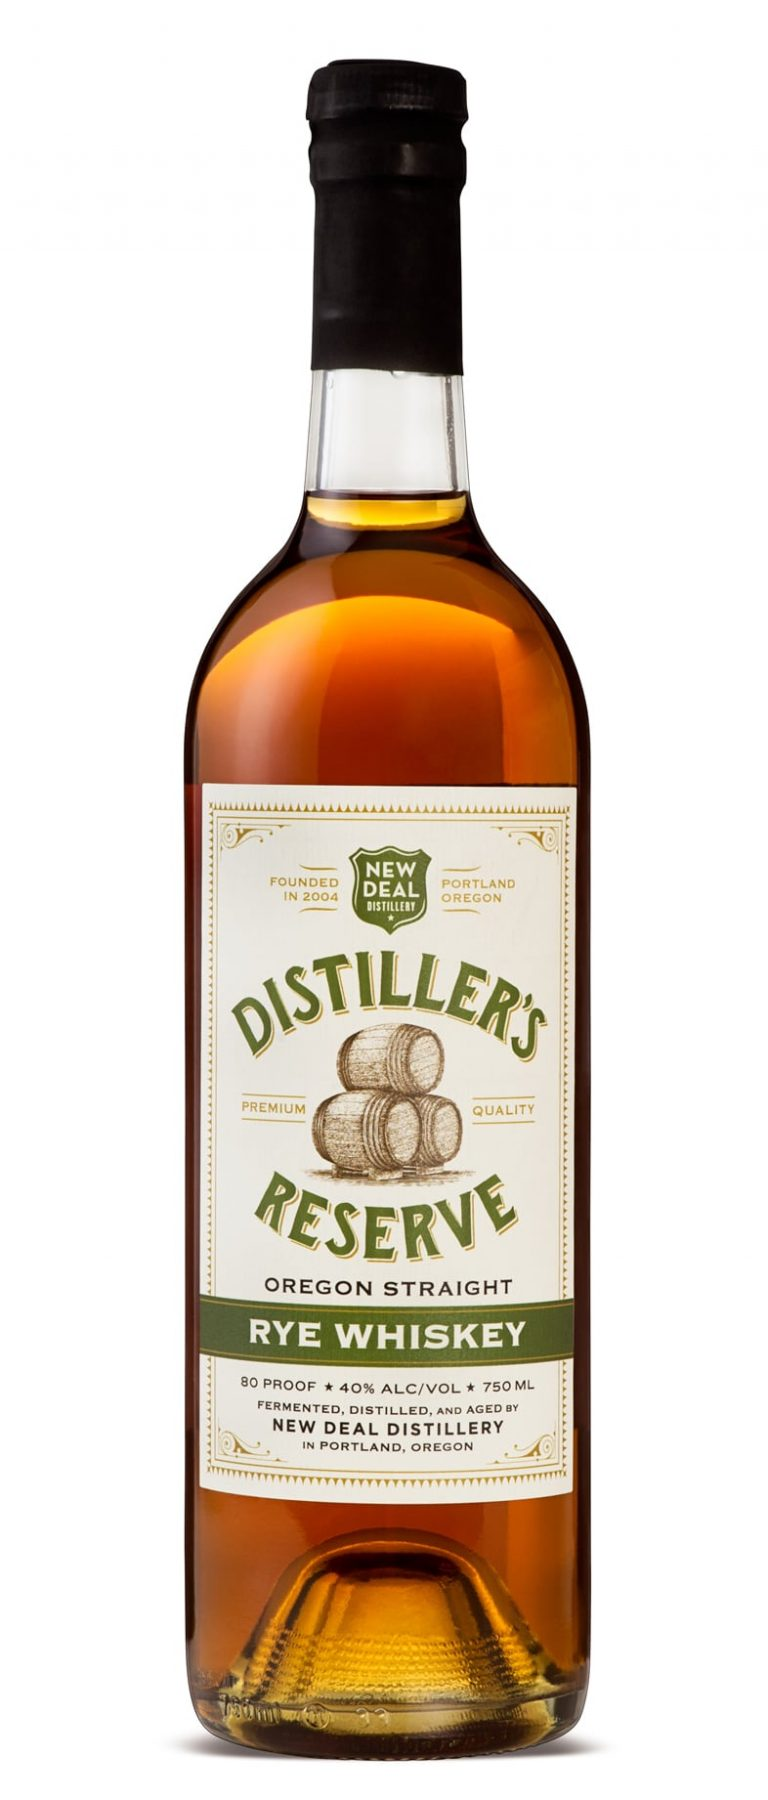 New Deal Distiller's Reserver Oregon Straight Rye Whiskey